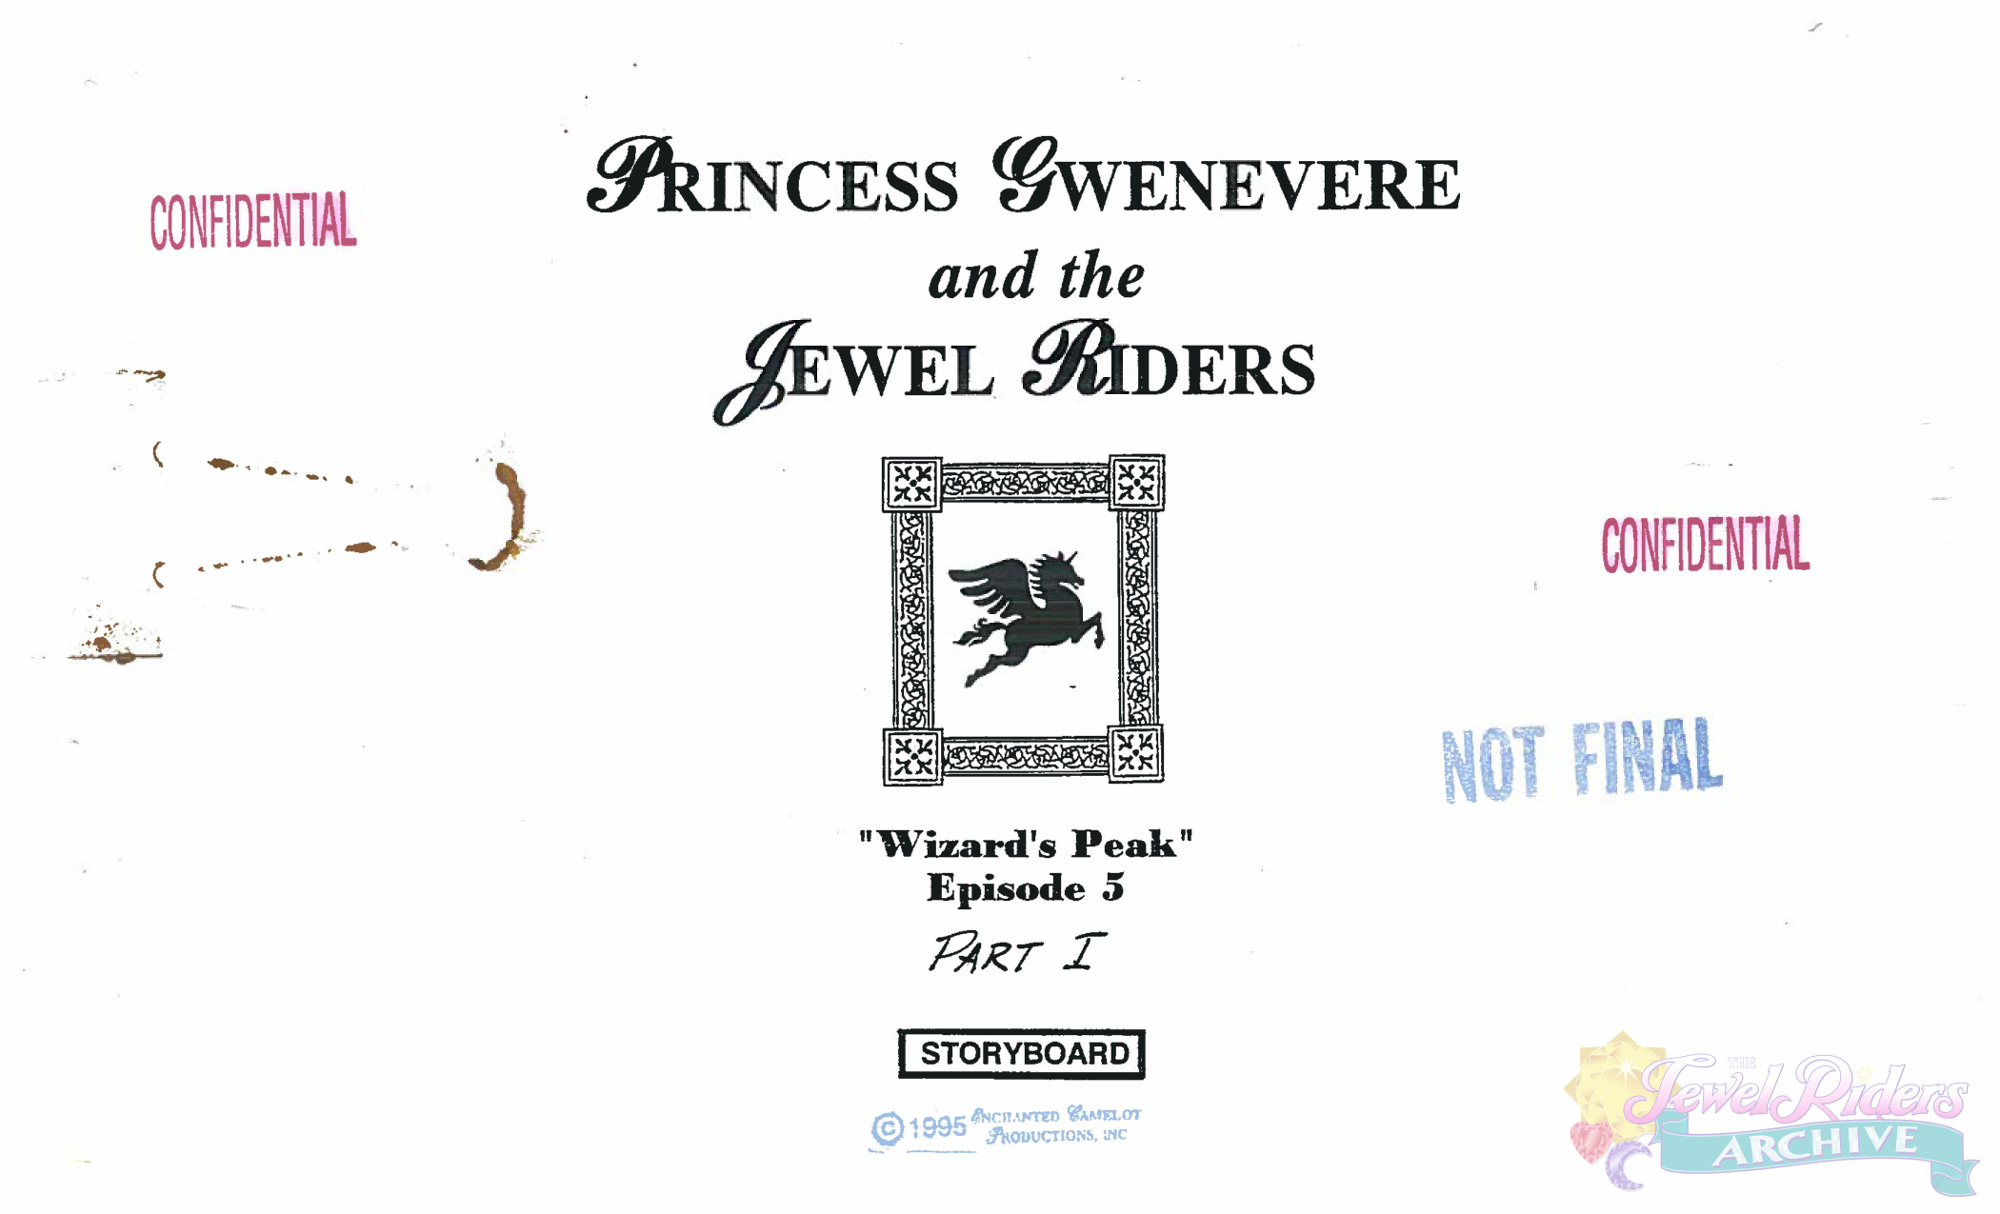 Christmas in July – The Jewel Riders Archive